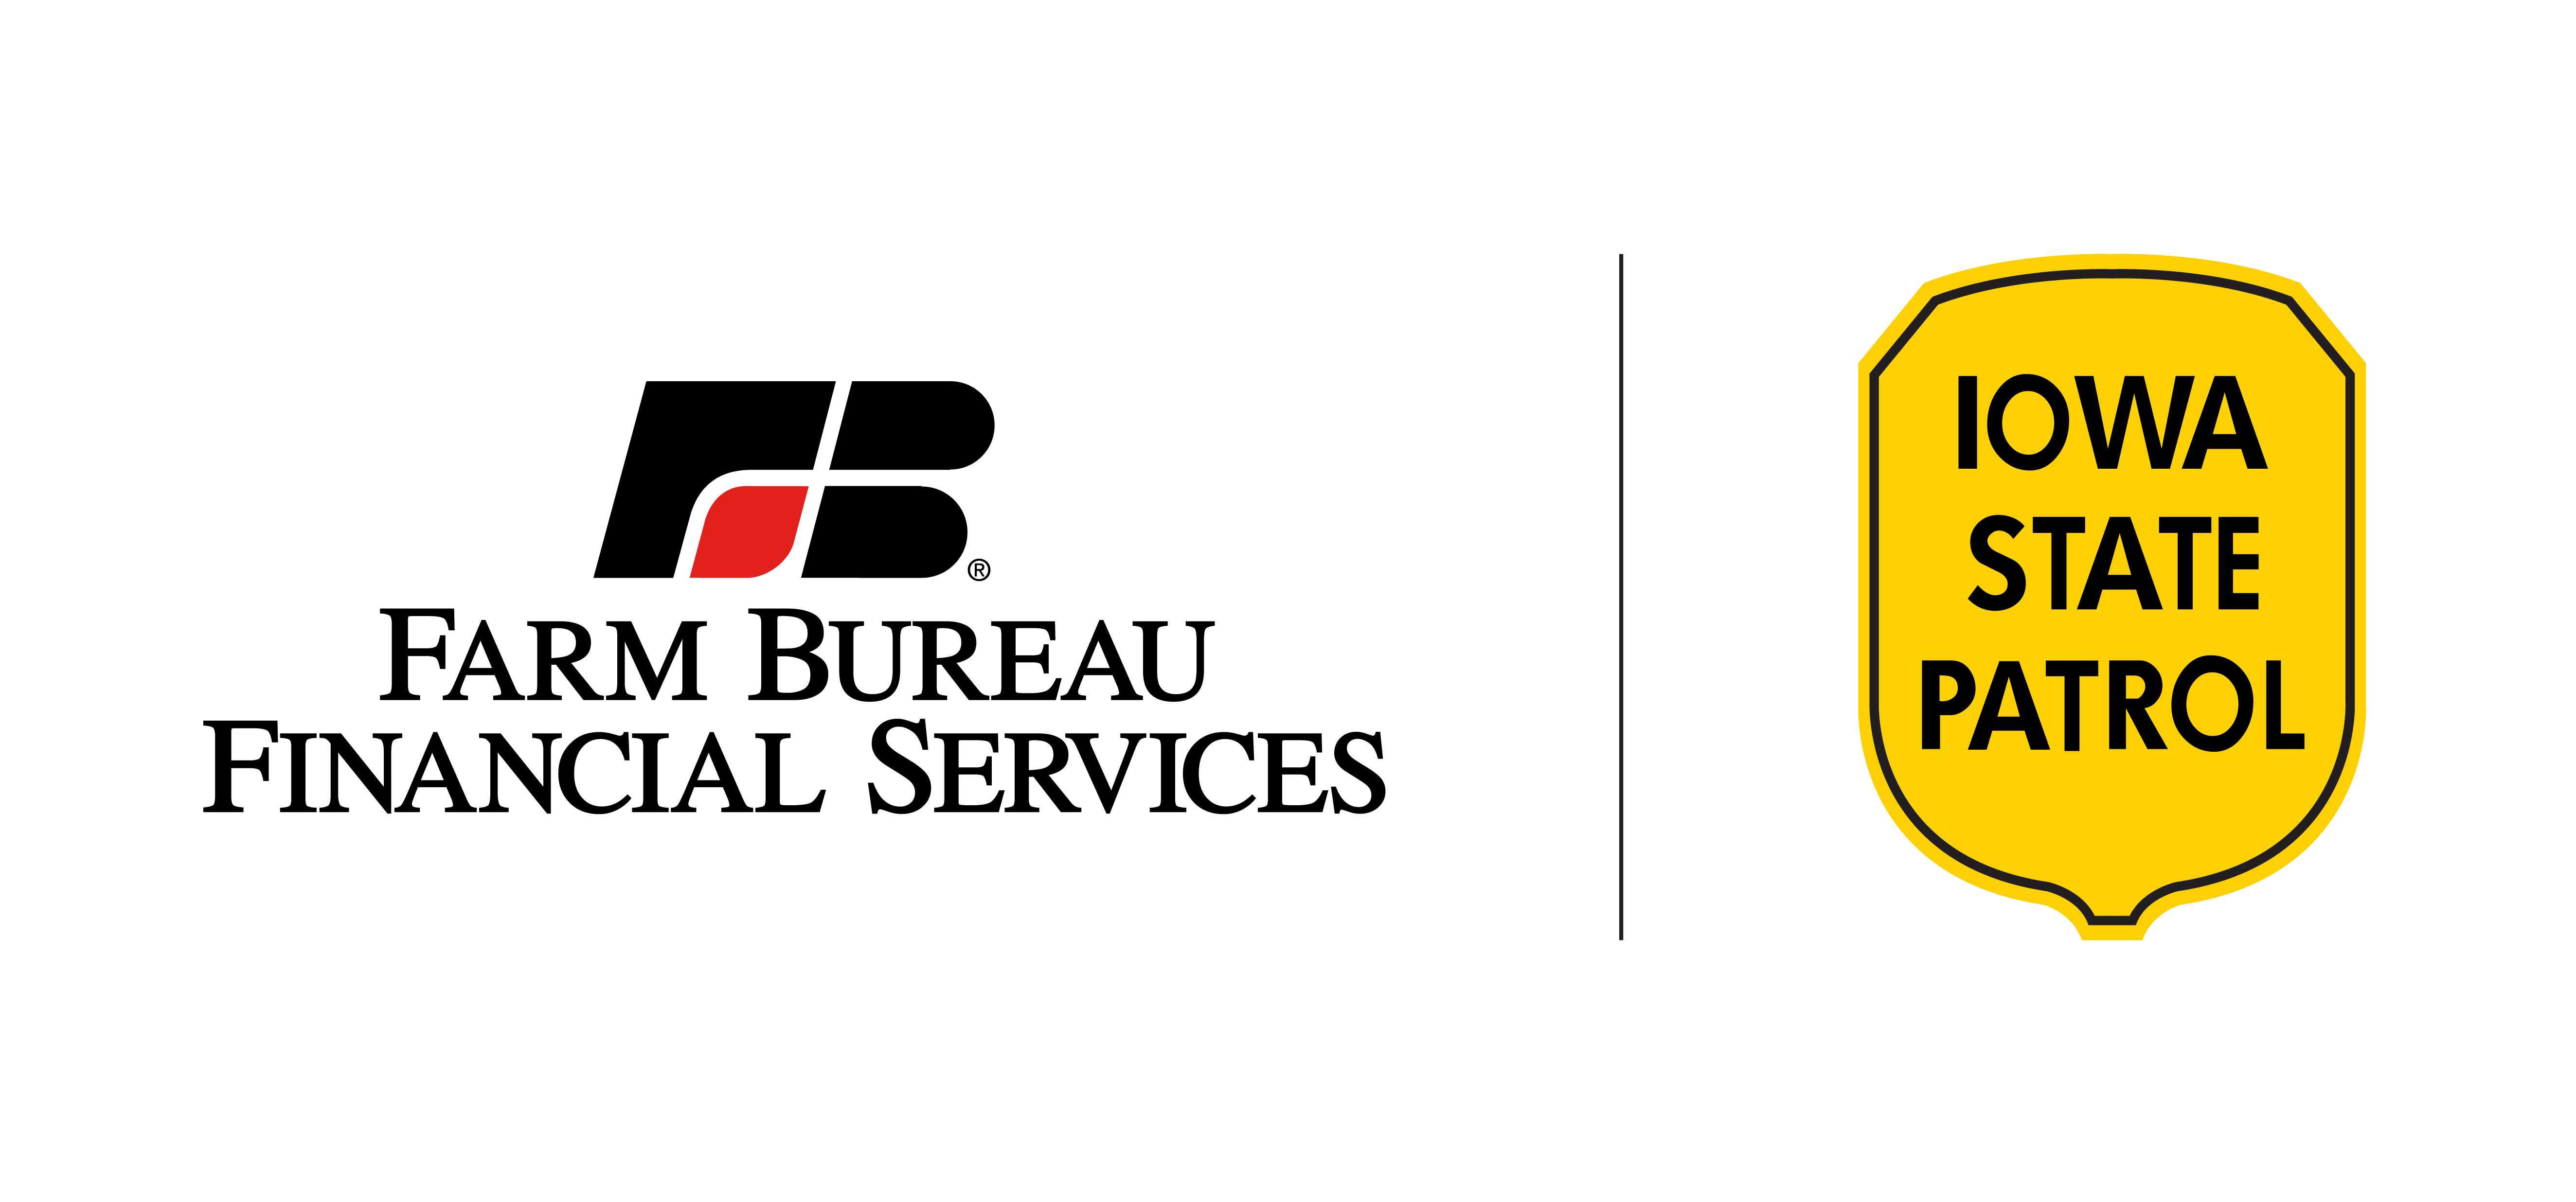 Farm Bureau Financial Services with Iowa State Patrol